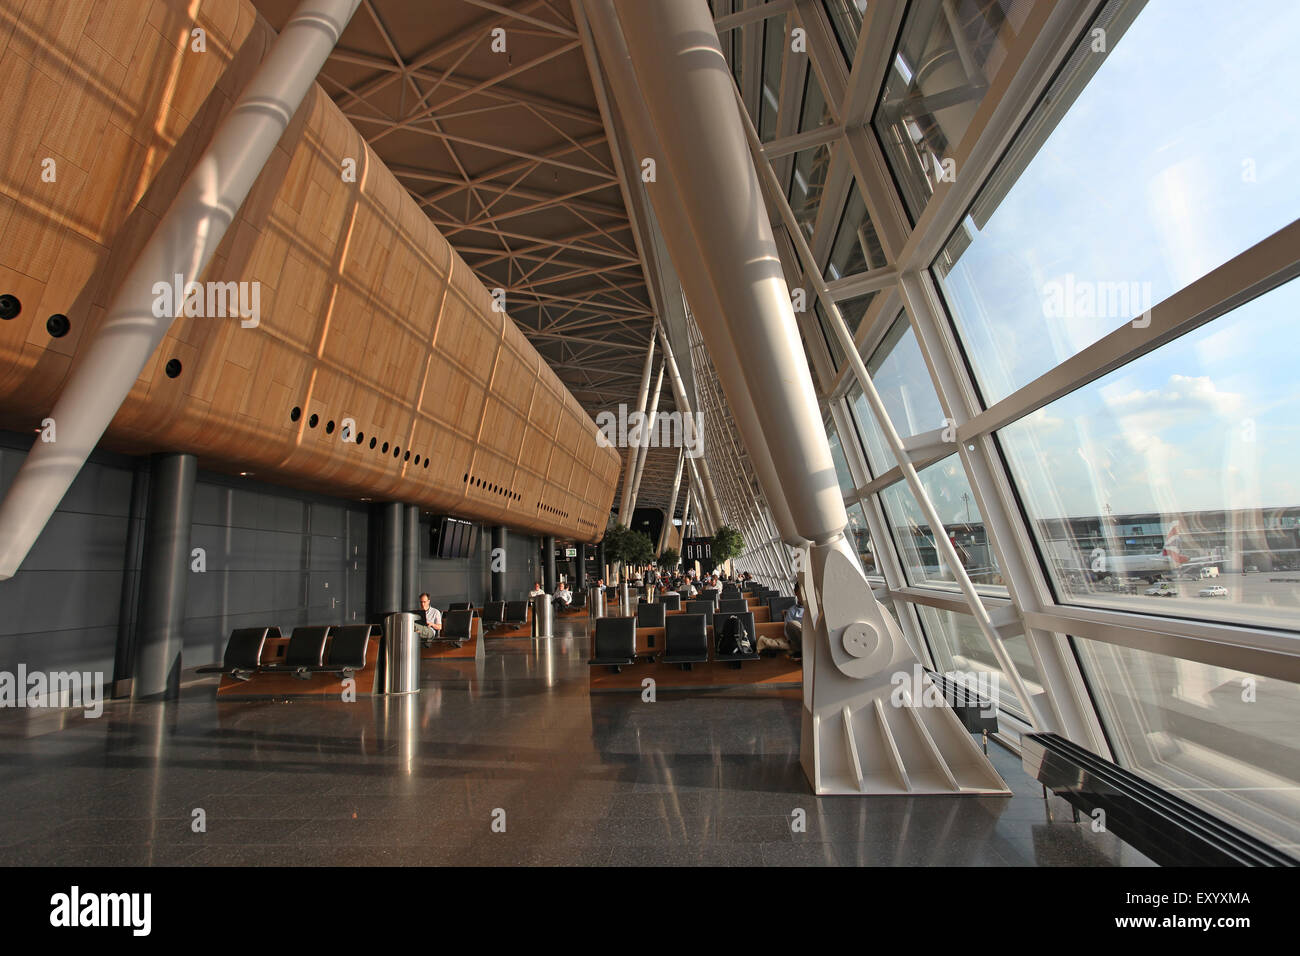 Zurich Airport Departure Lounge - Stock Image